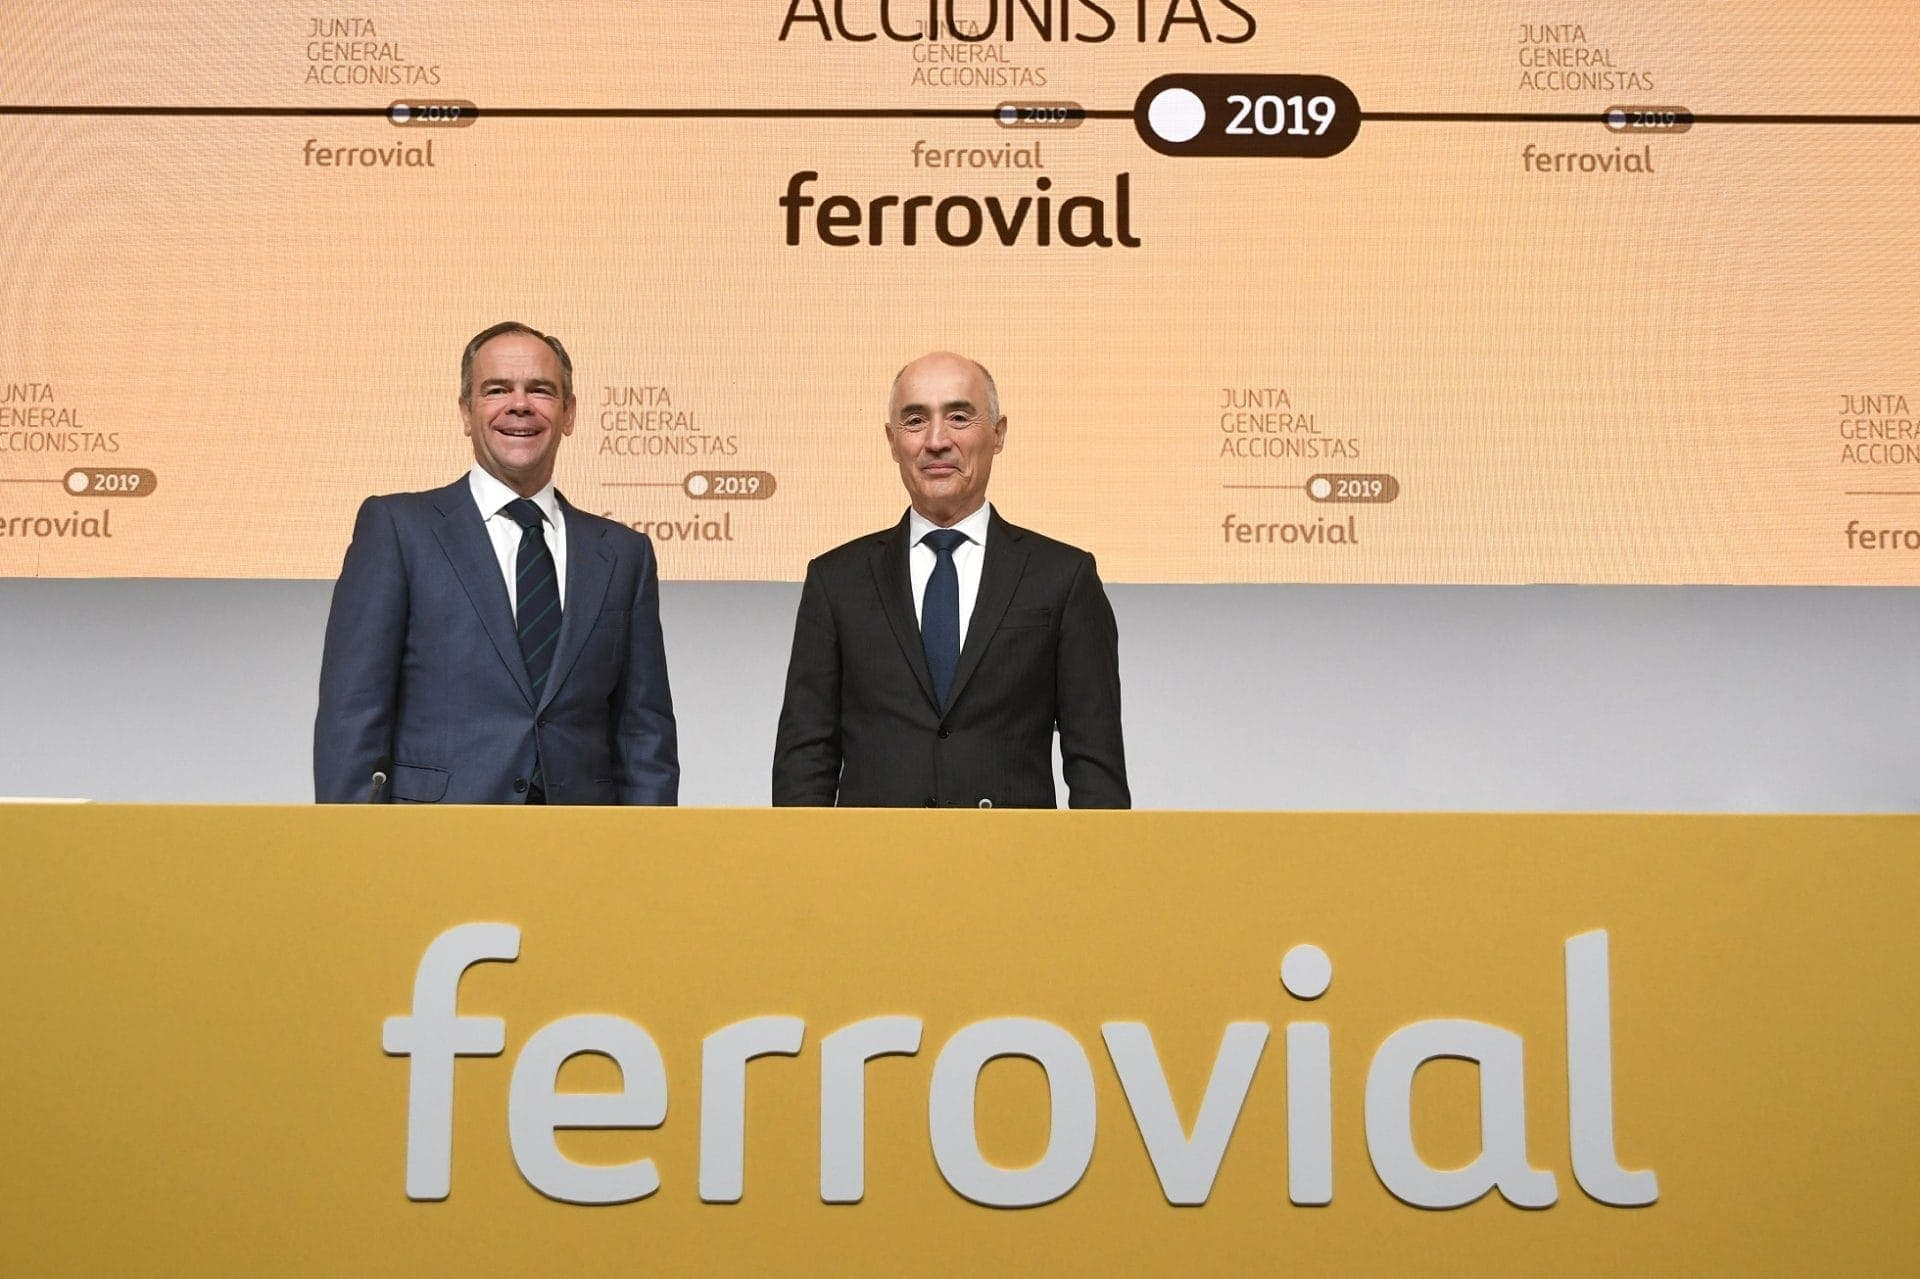 Íñigo Meirás and Rafael del Pino at the Annual Shareholders' Meeting 2019